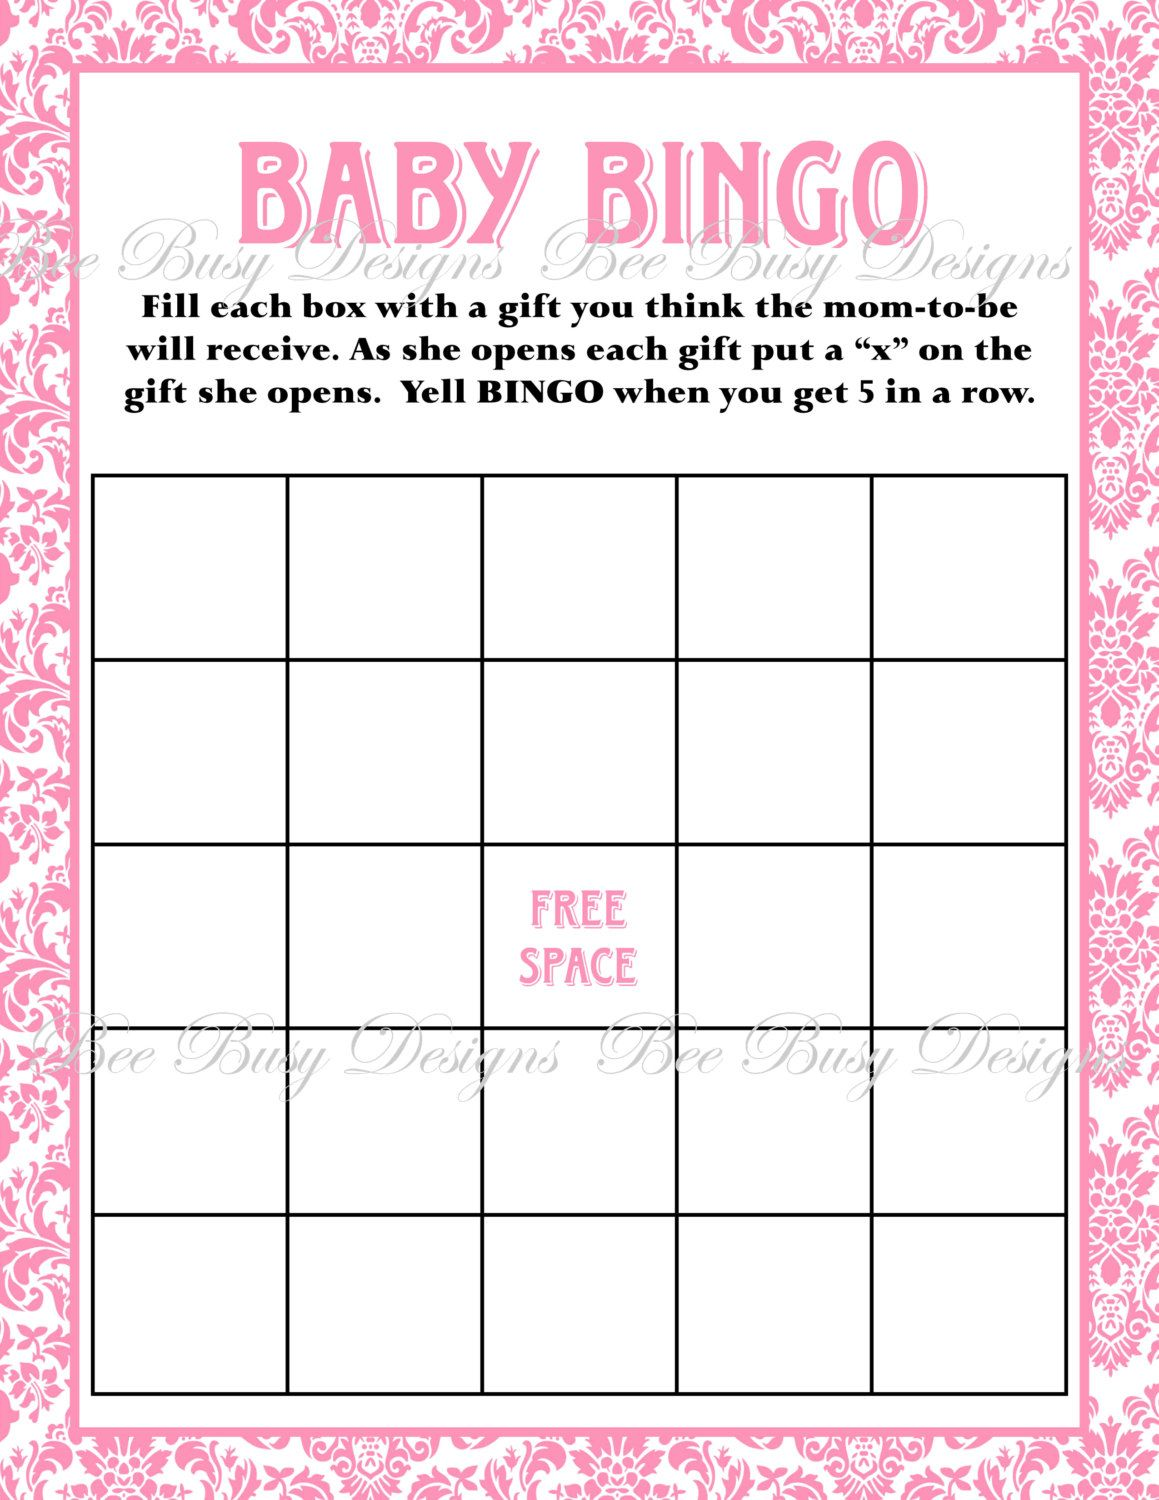 This Is For A Printable Pink Damask Baby Bingo File